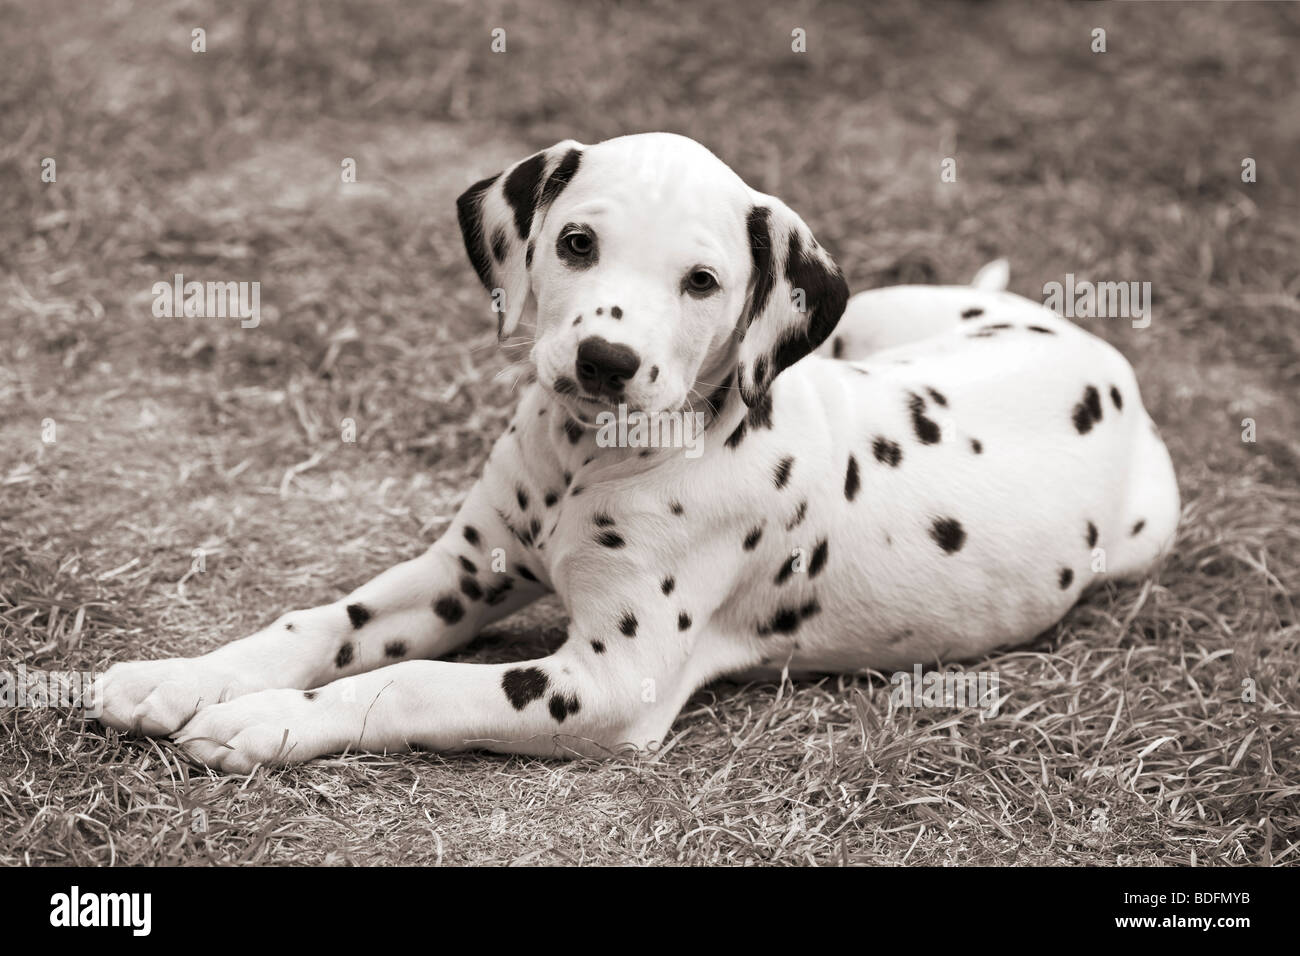 dalmatian puppy, eight weeks old, laying on the grass, black and white, sepia toned - Stock Image